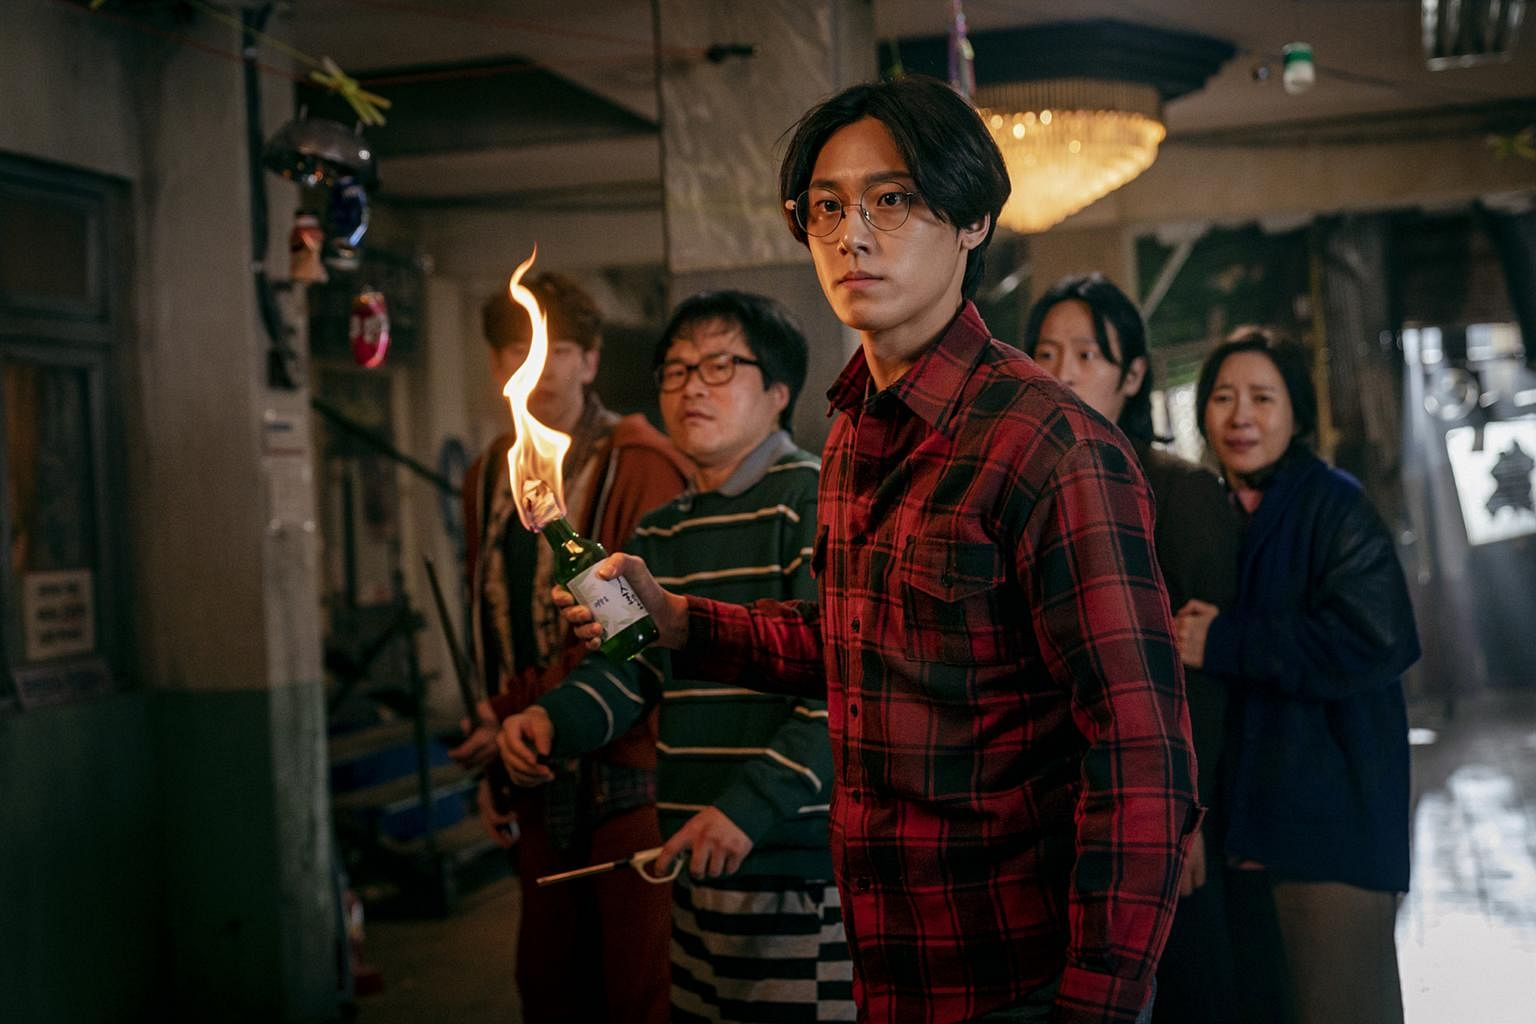 Monsters are part of the draw on sci-fi K-drama Sweet Home, Entertainment  News & Top Stories - The Straits Times